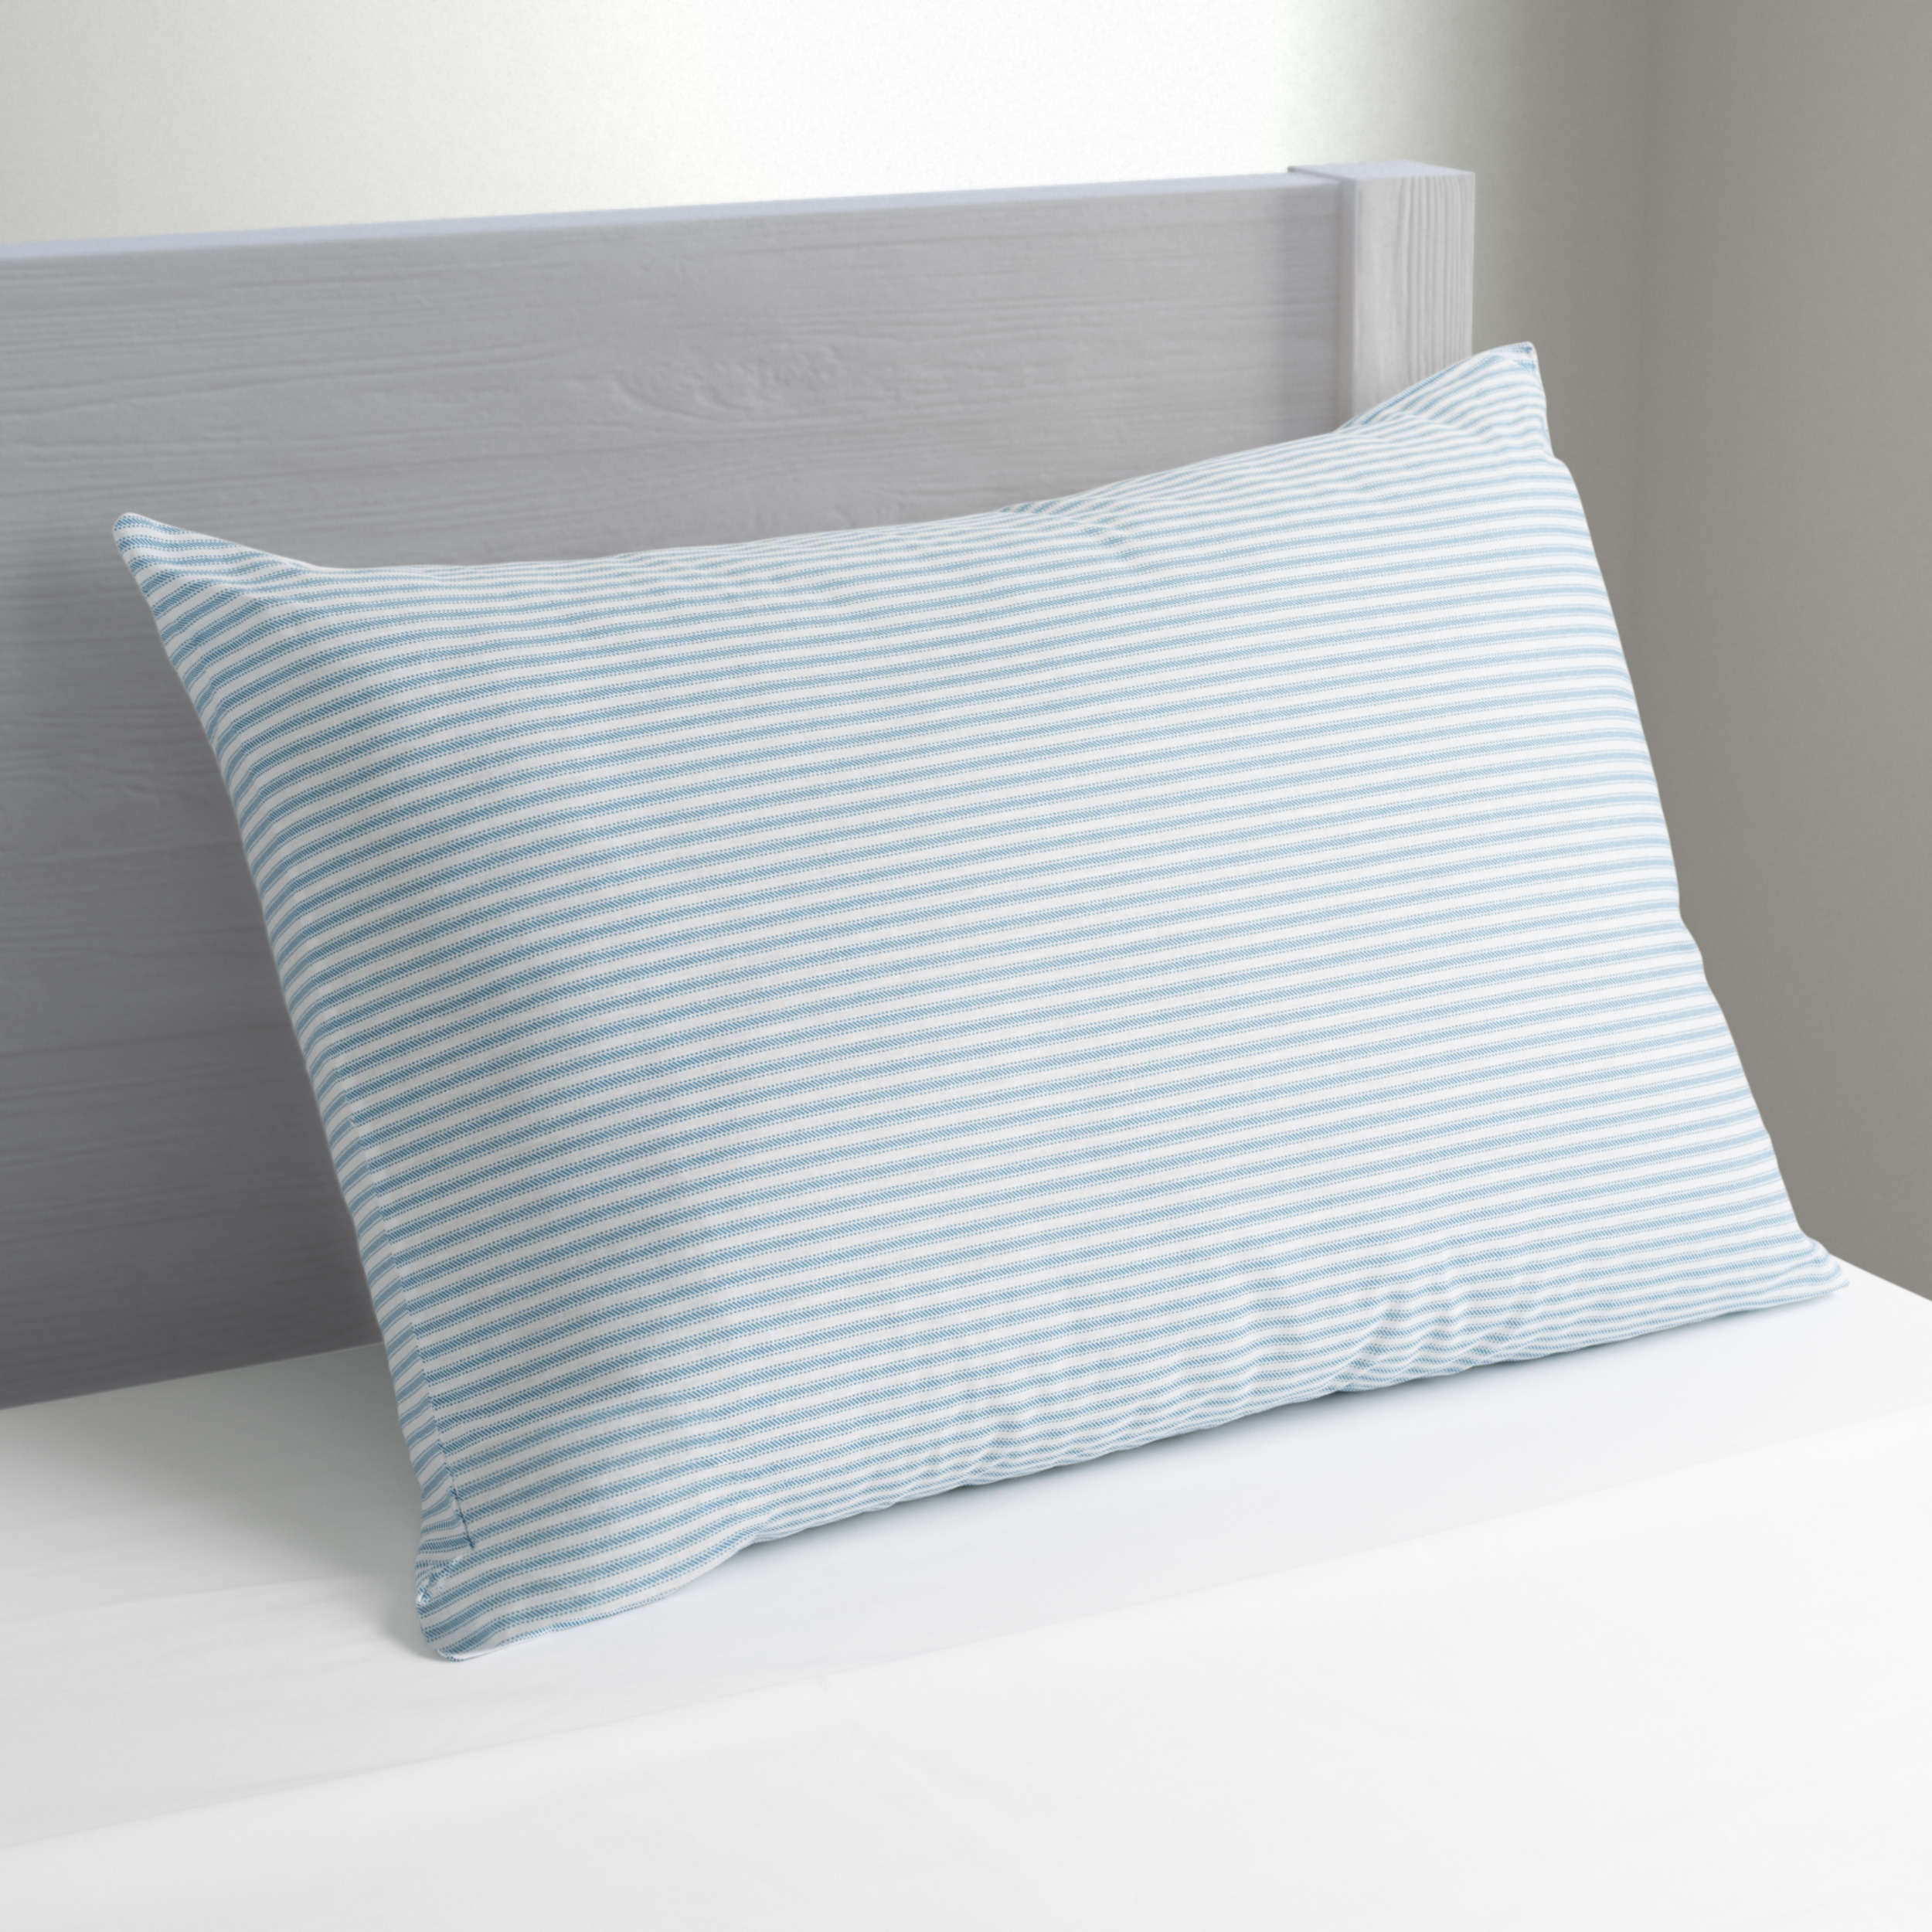 Mainstays Huge Pillow 20 X 28 In Blue And White Stripe Walmart Com Walmart Com